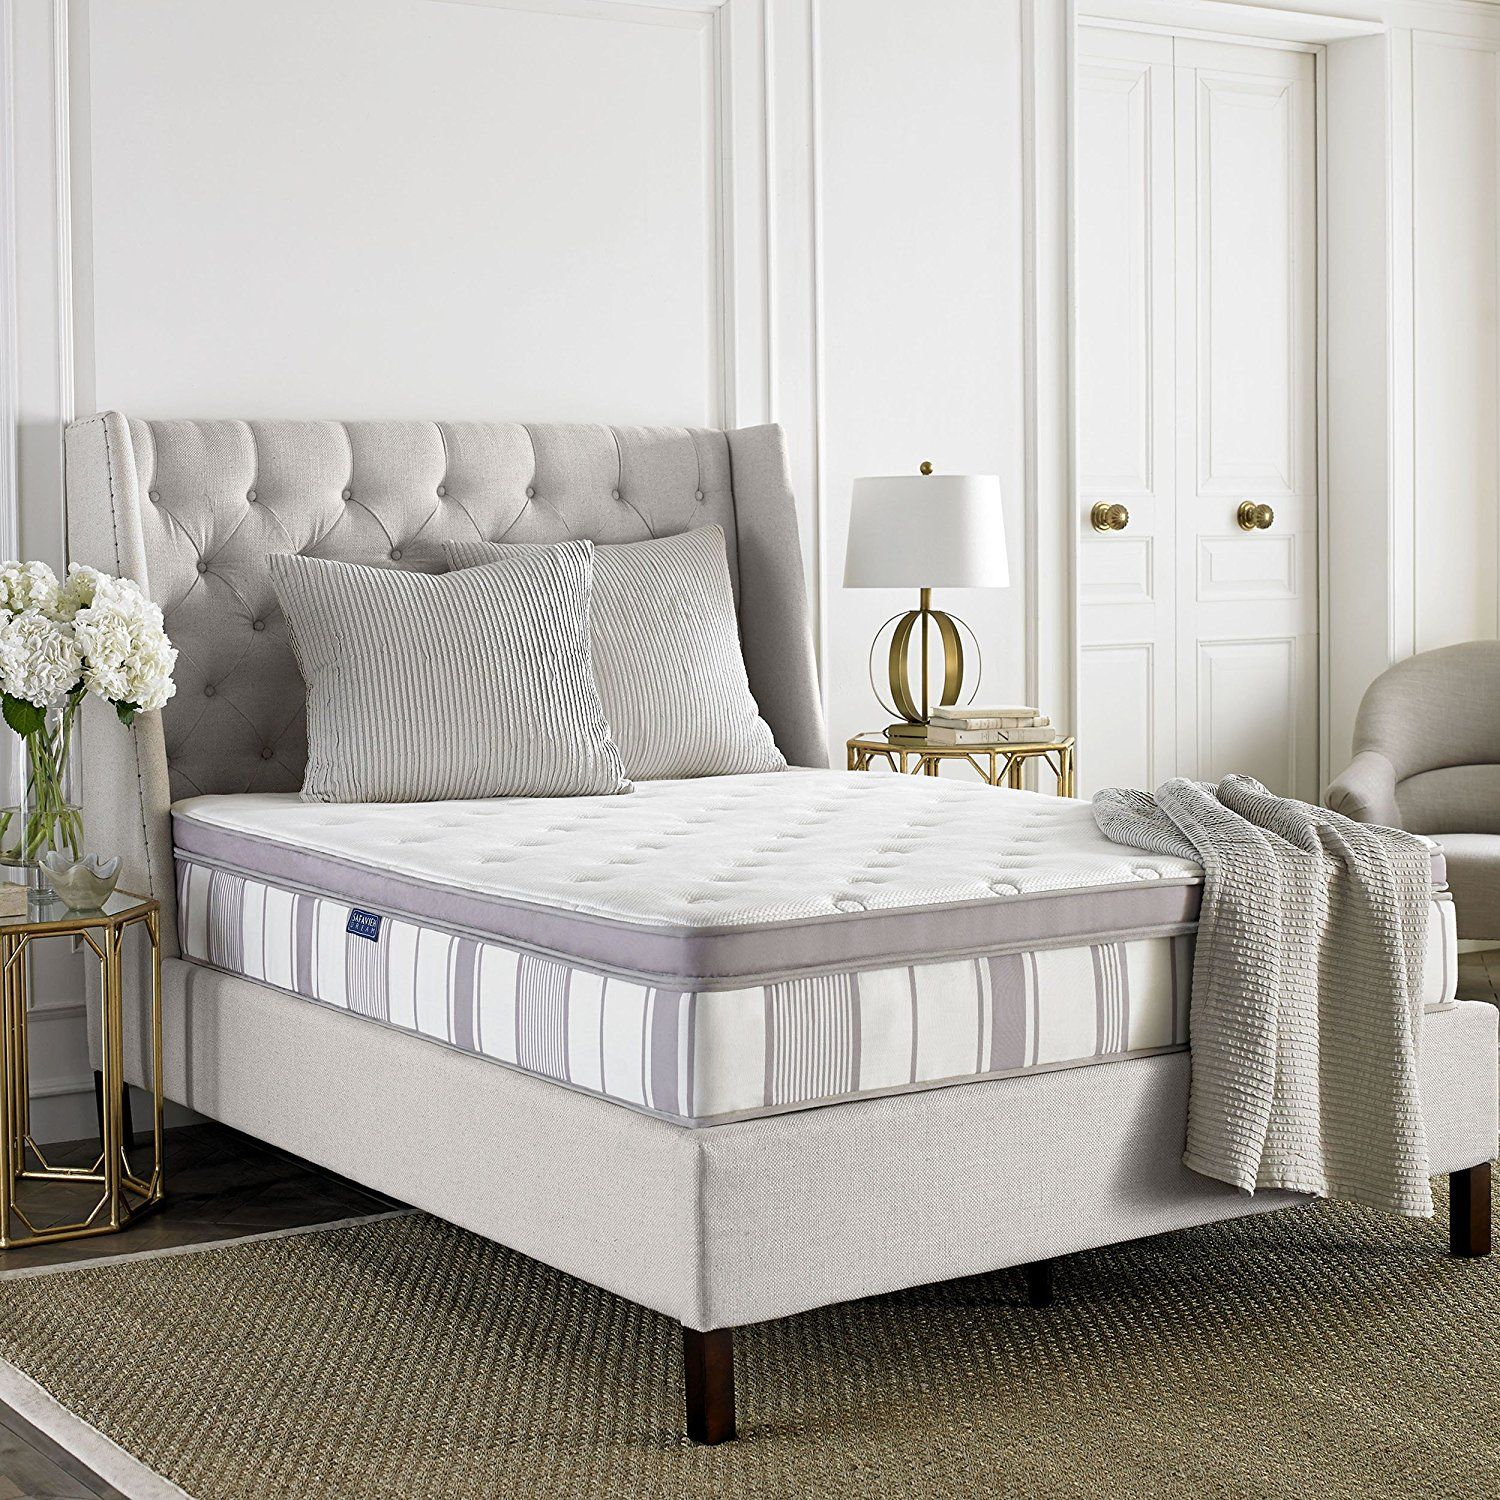 safavieh dream collection serenity white and grey spring mattress